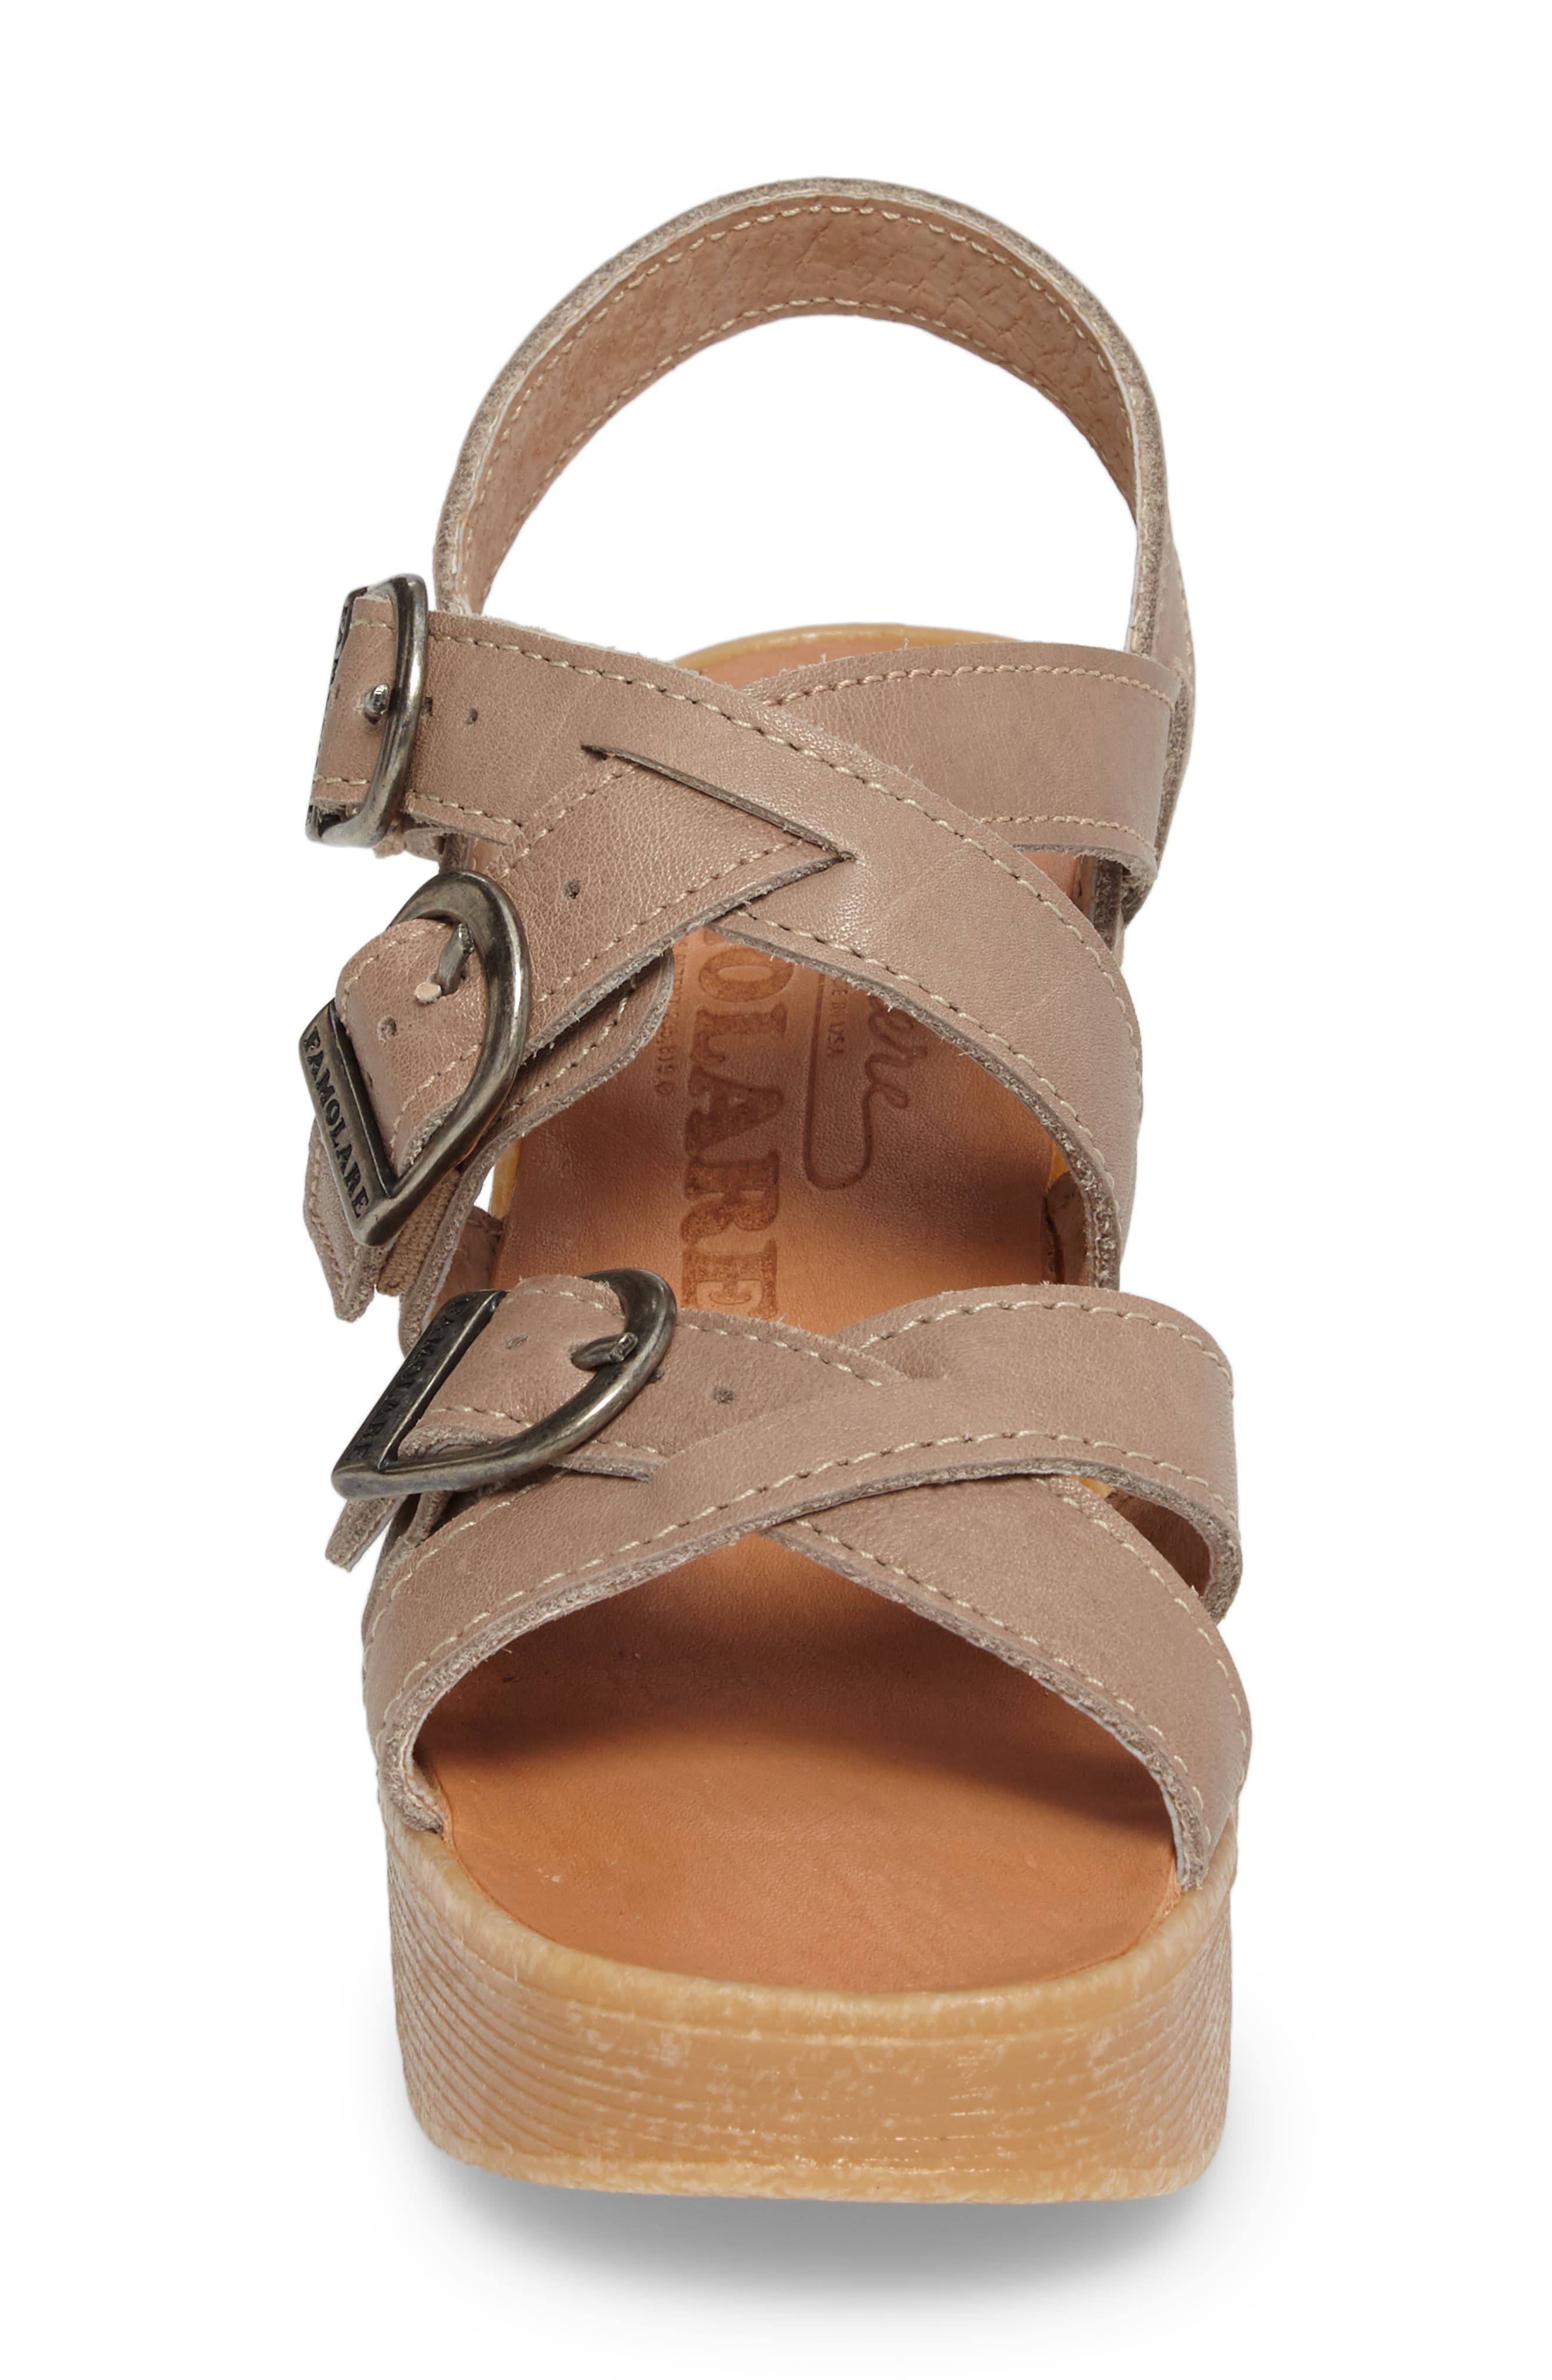 Buckle Up Wedge Sandal,                             Alternate thumbnail 4, color,                             SAND LEATHER